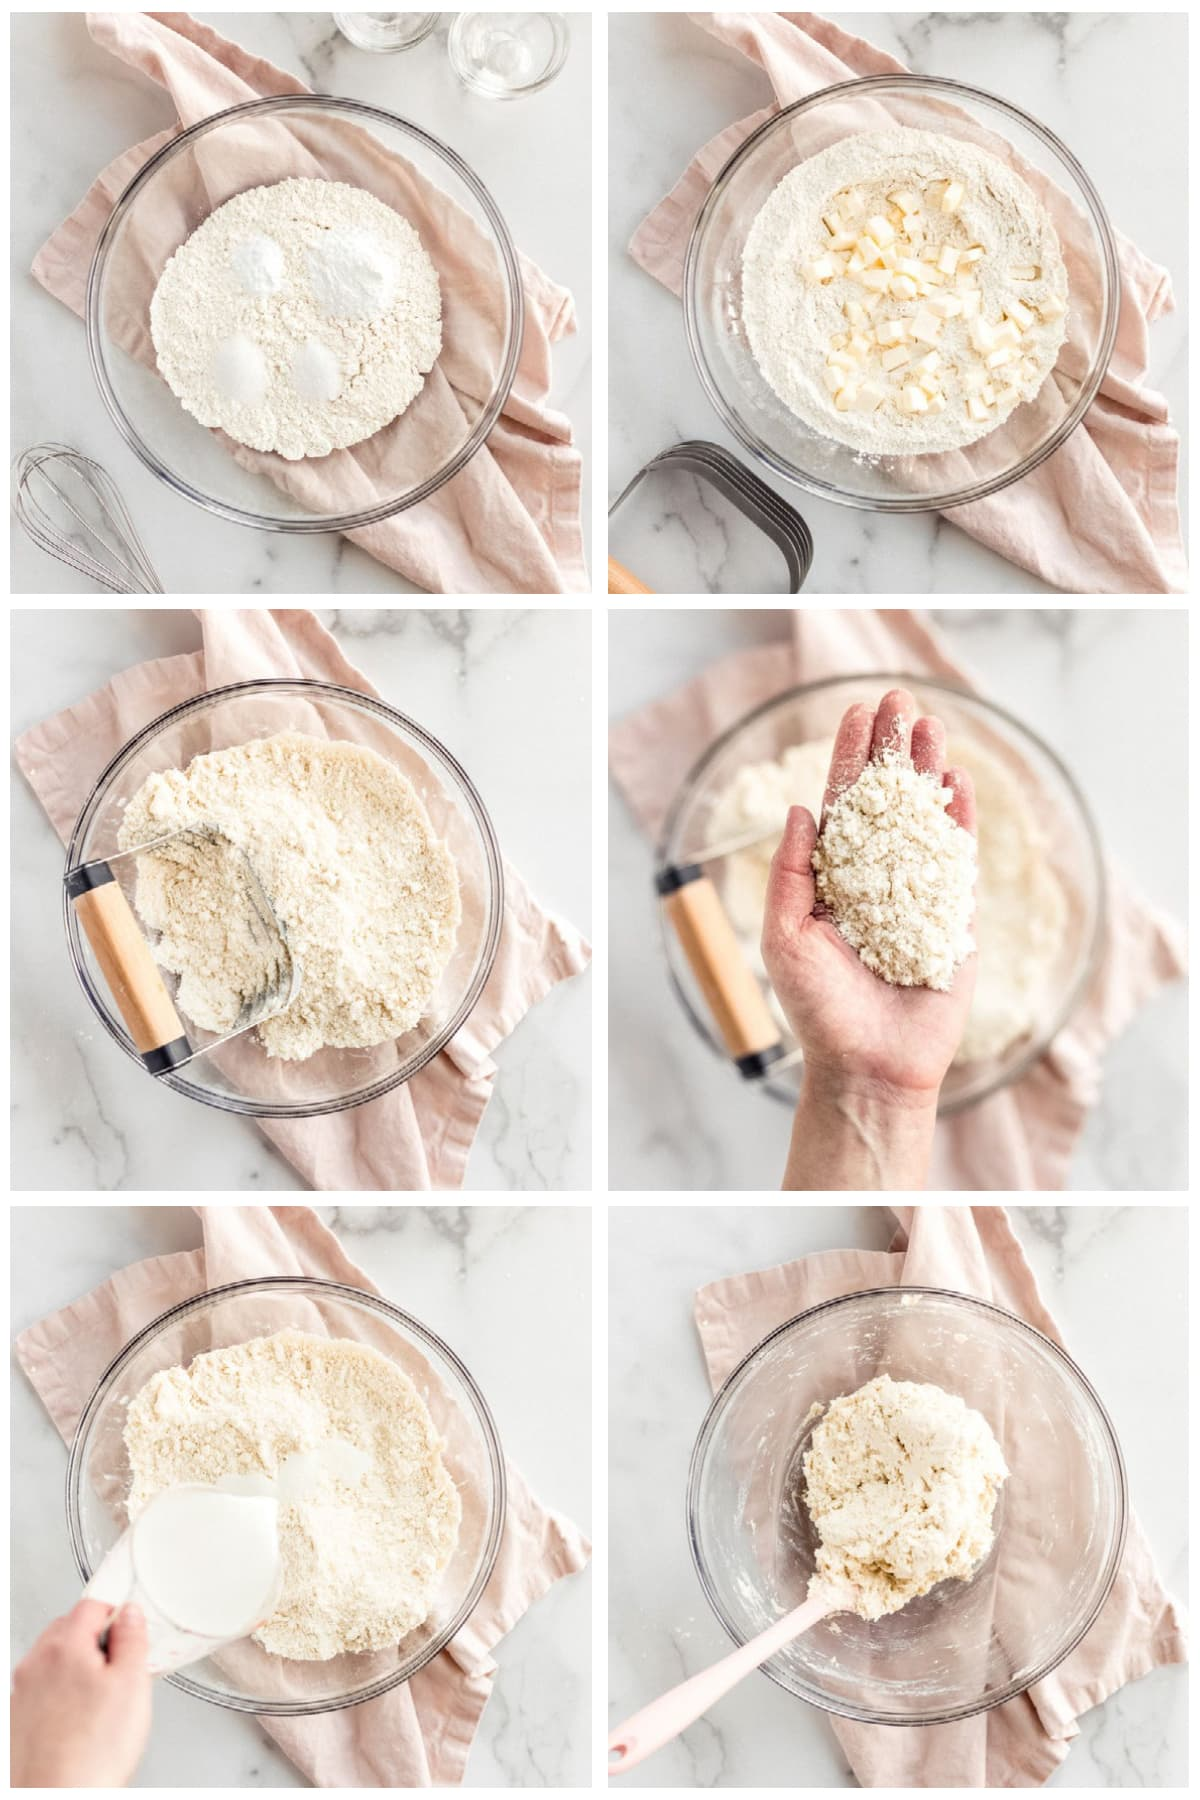 photo collage demonstrating how to make buttermilk biscuit dough